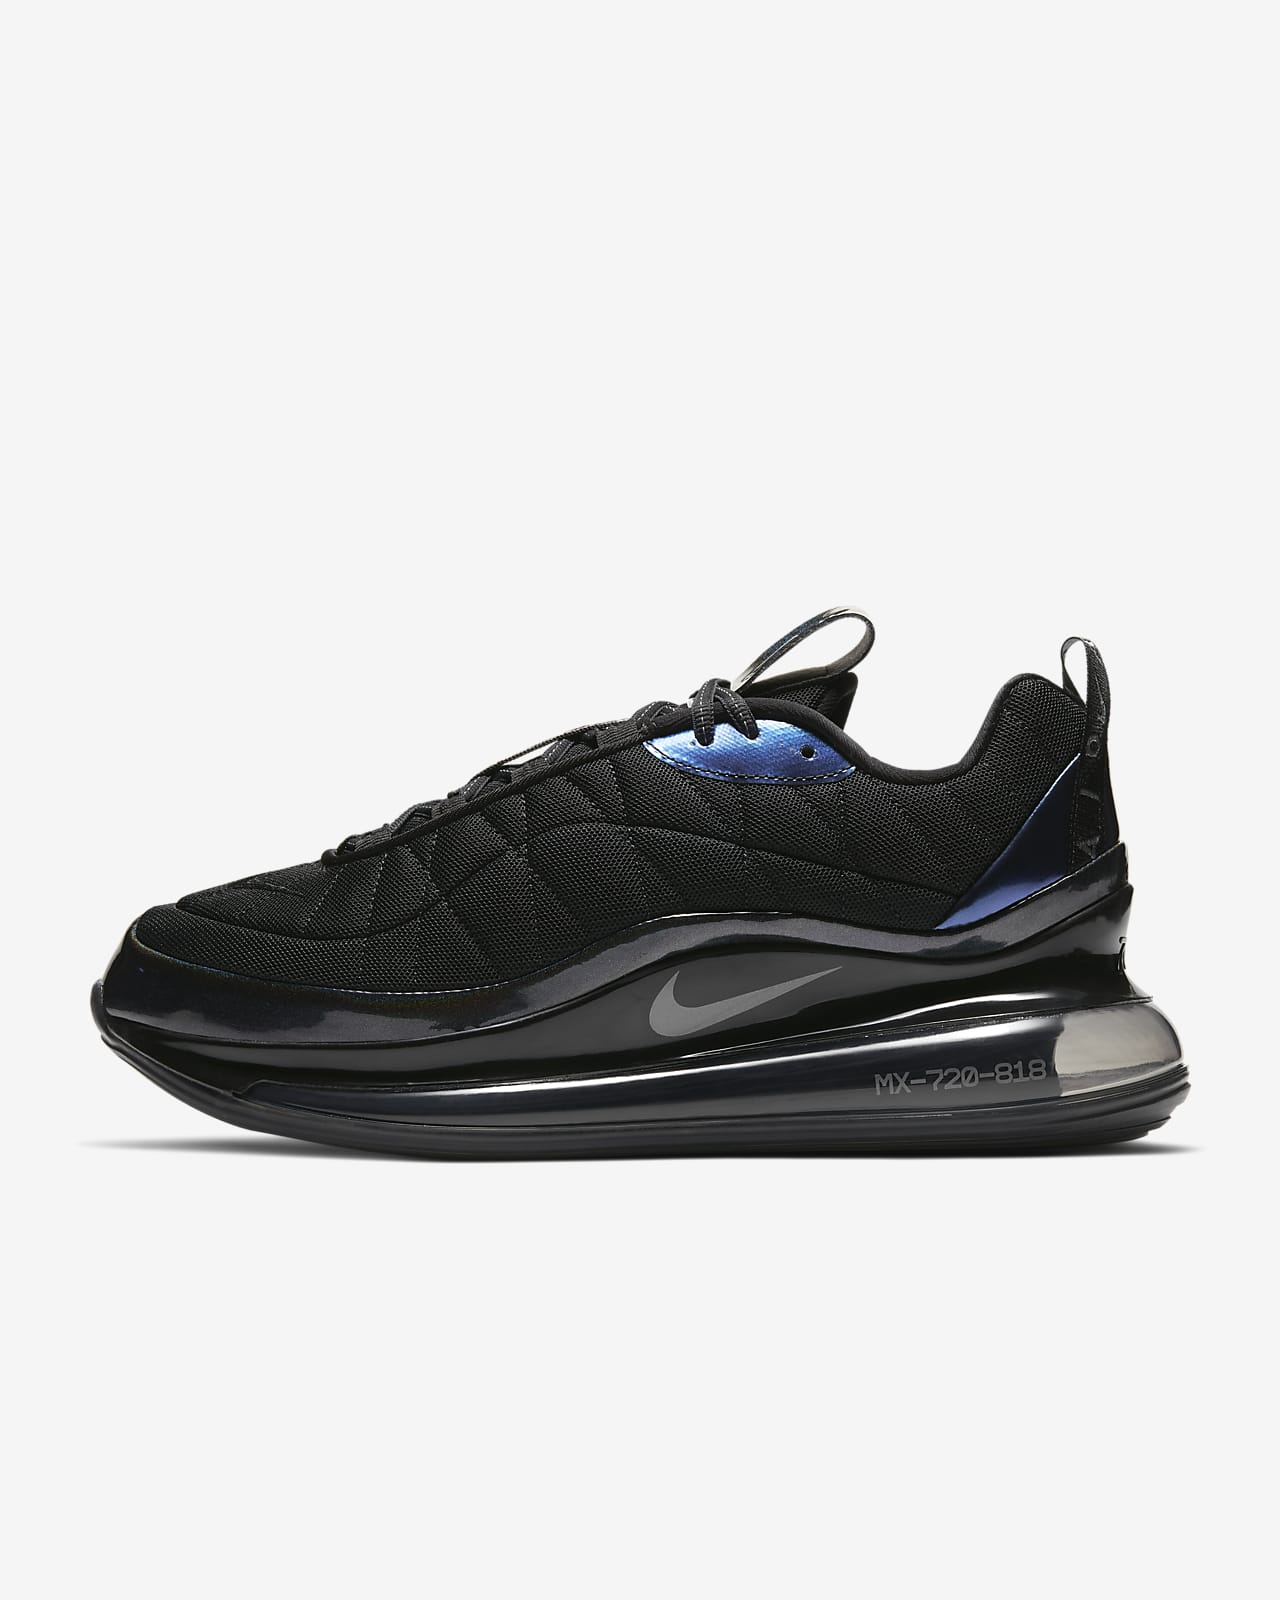 Nike MX-720-818 Men's Shoe